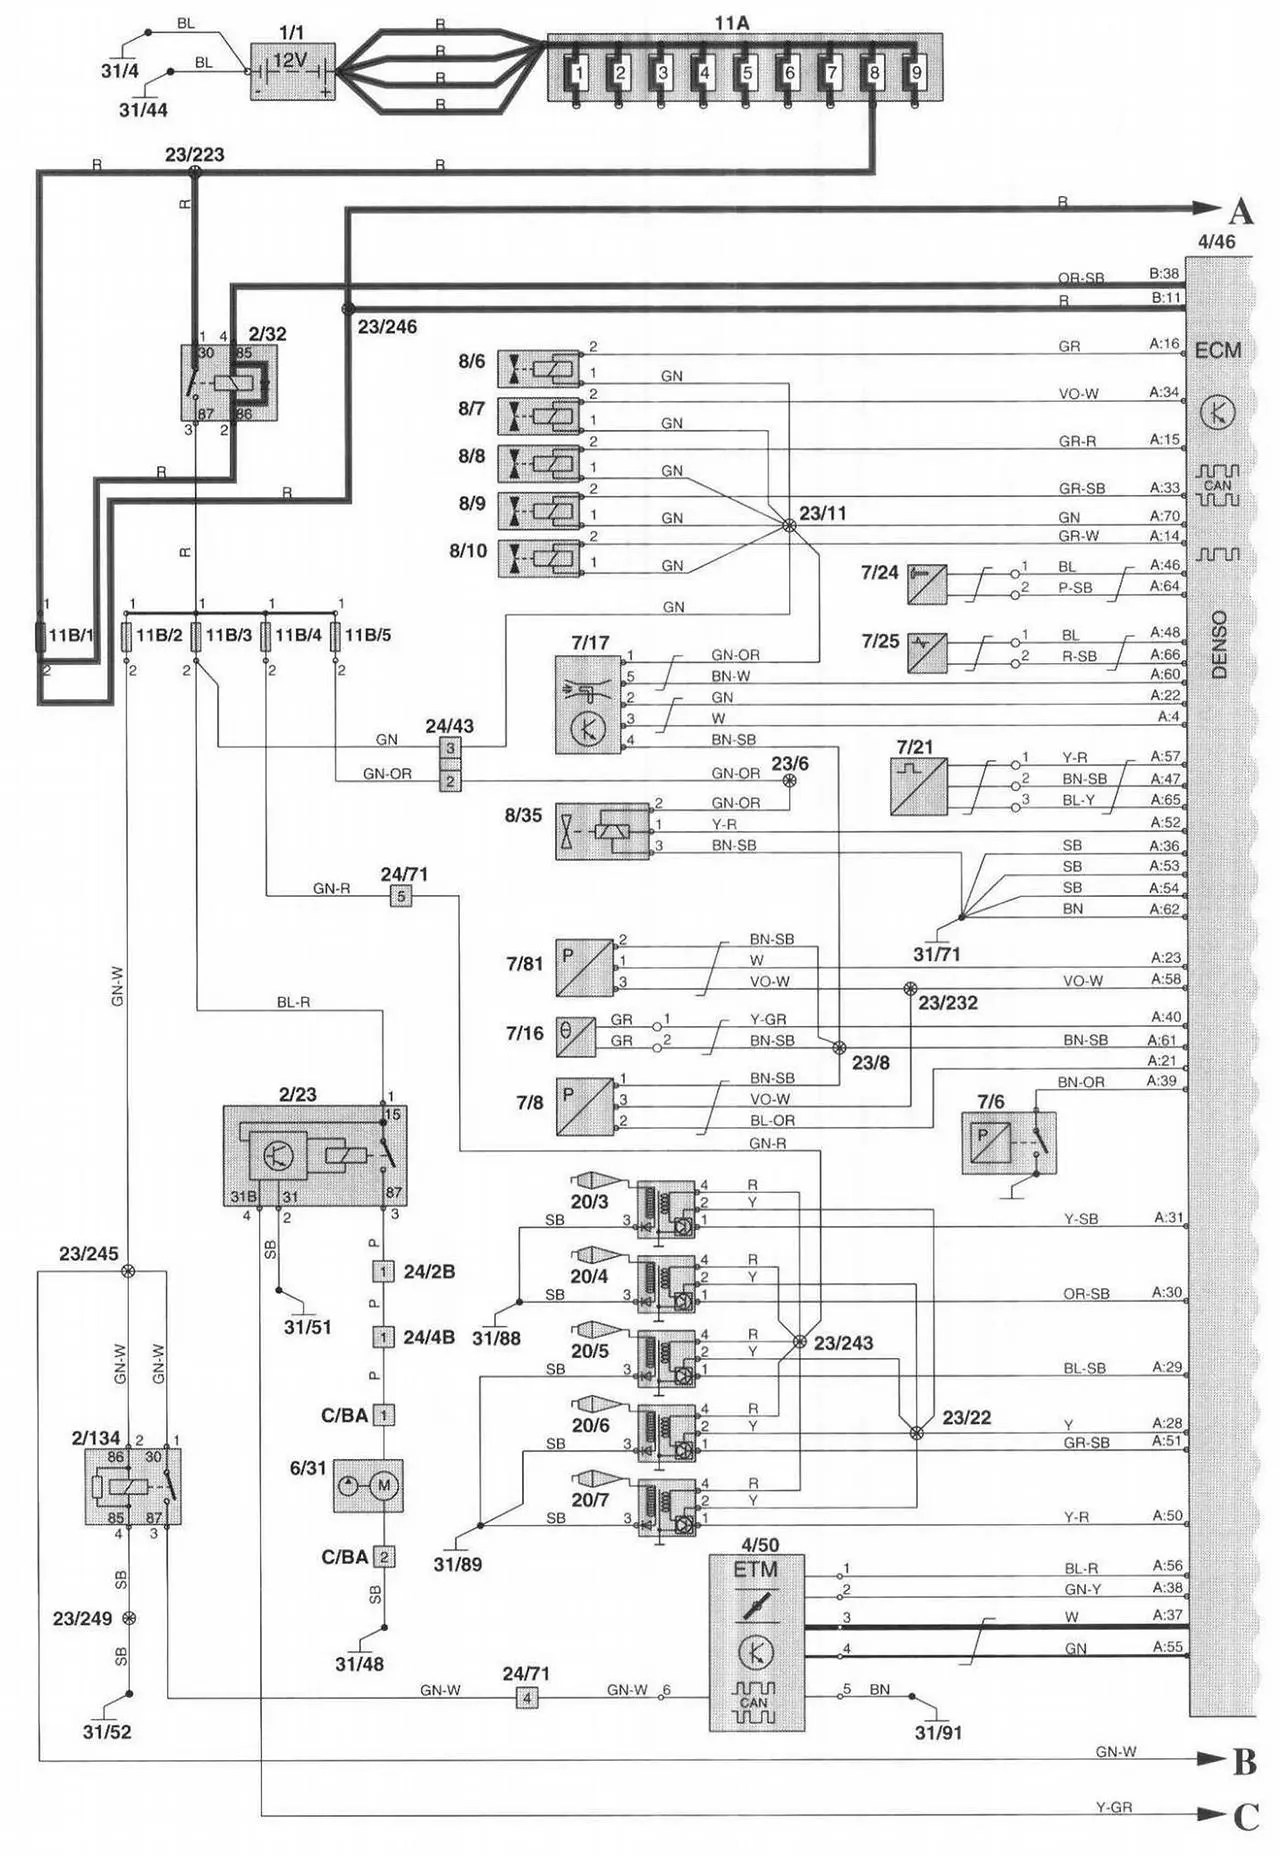 hight resolution of volvo vnl alternator wiring diagrams ford f800 wiring volvo wiring diagrams v70 1997 wipers volvo wiring diagrams fh12